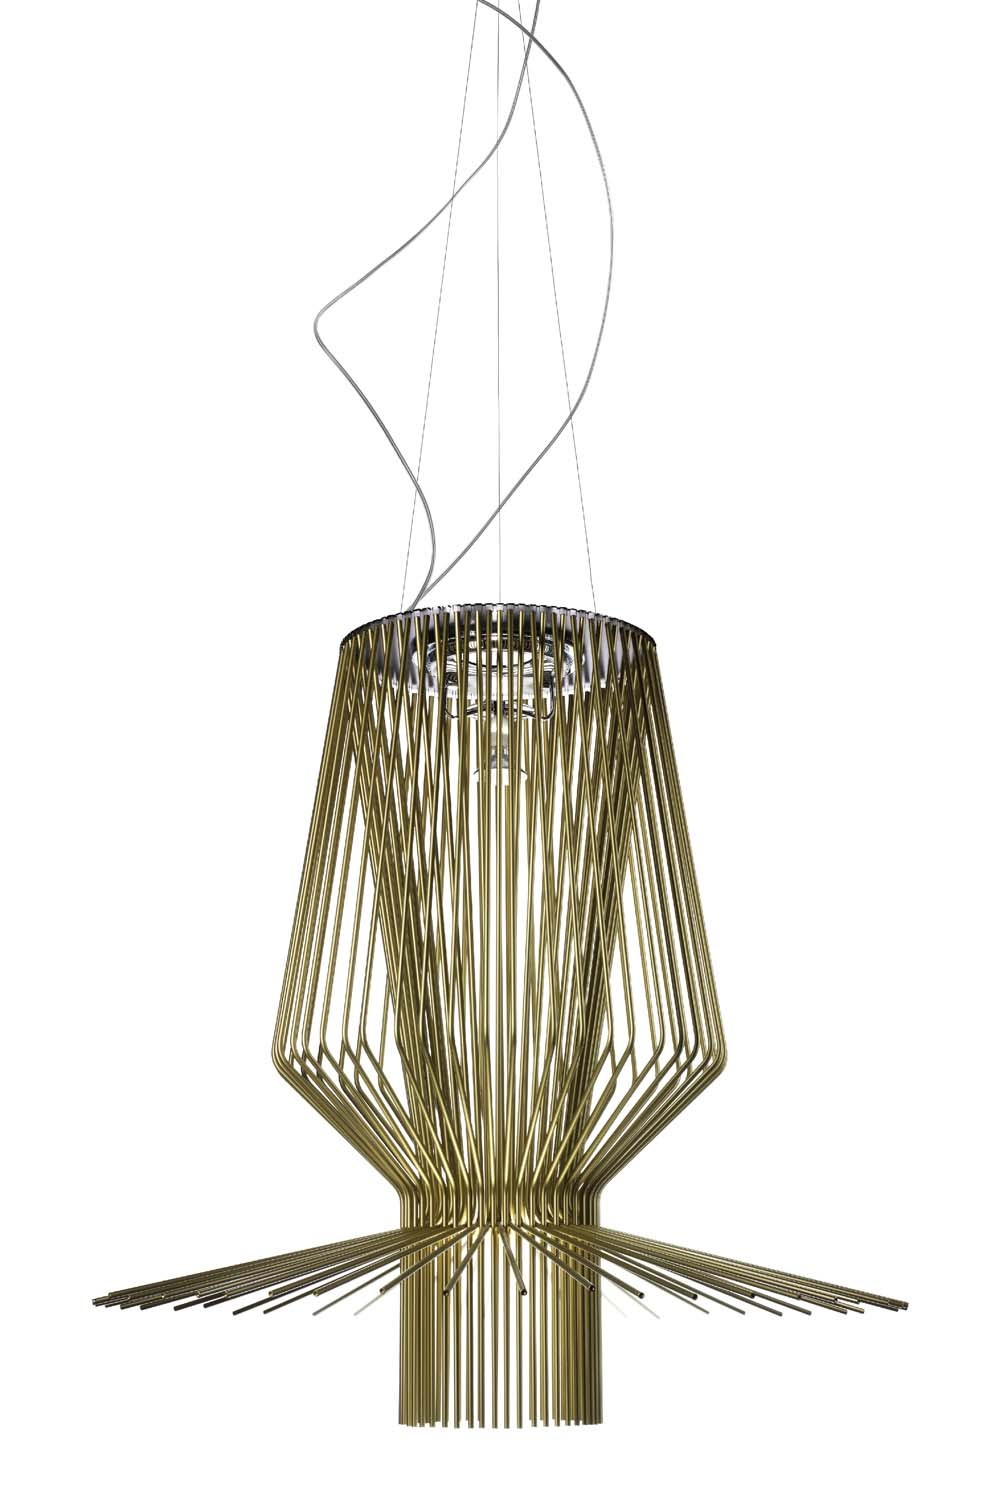 Foscarini Allegro Assai Suspension Lamp